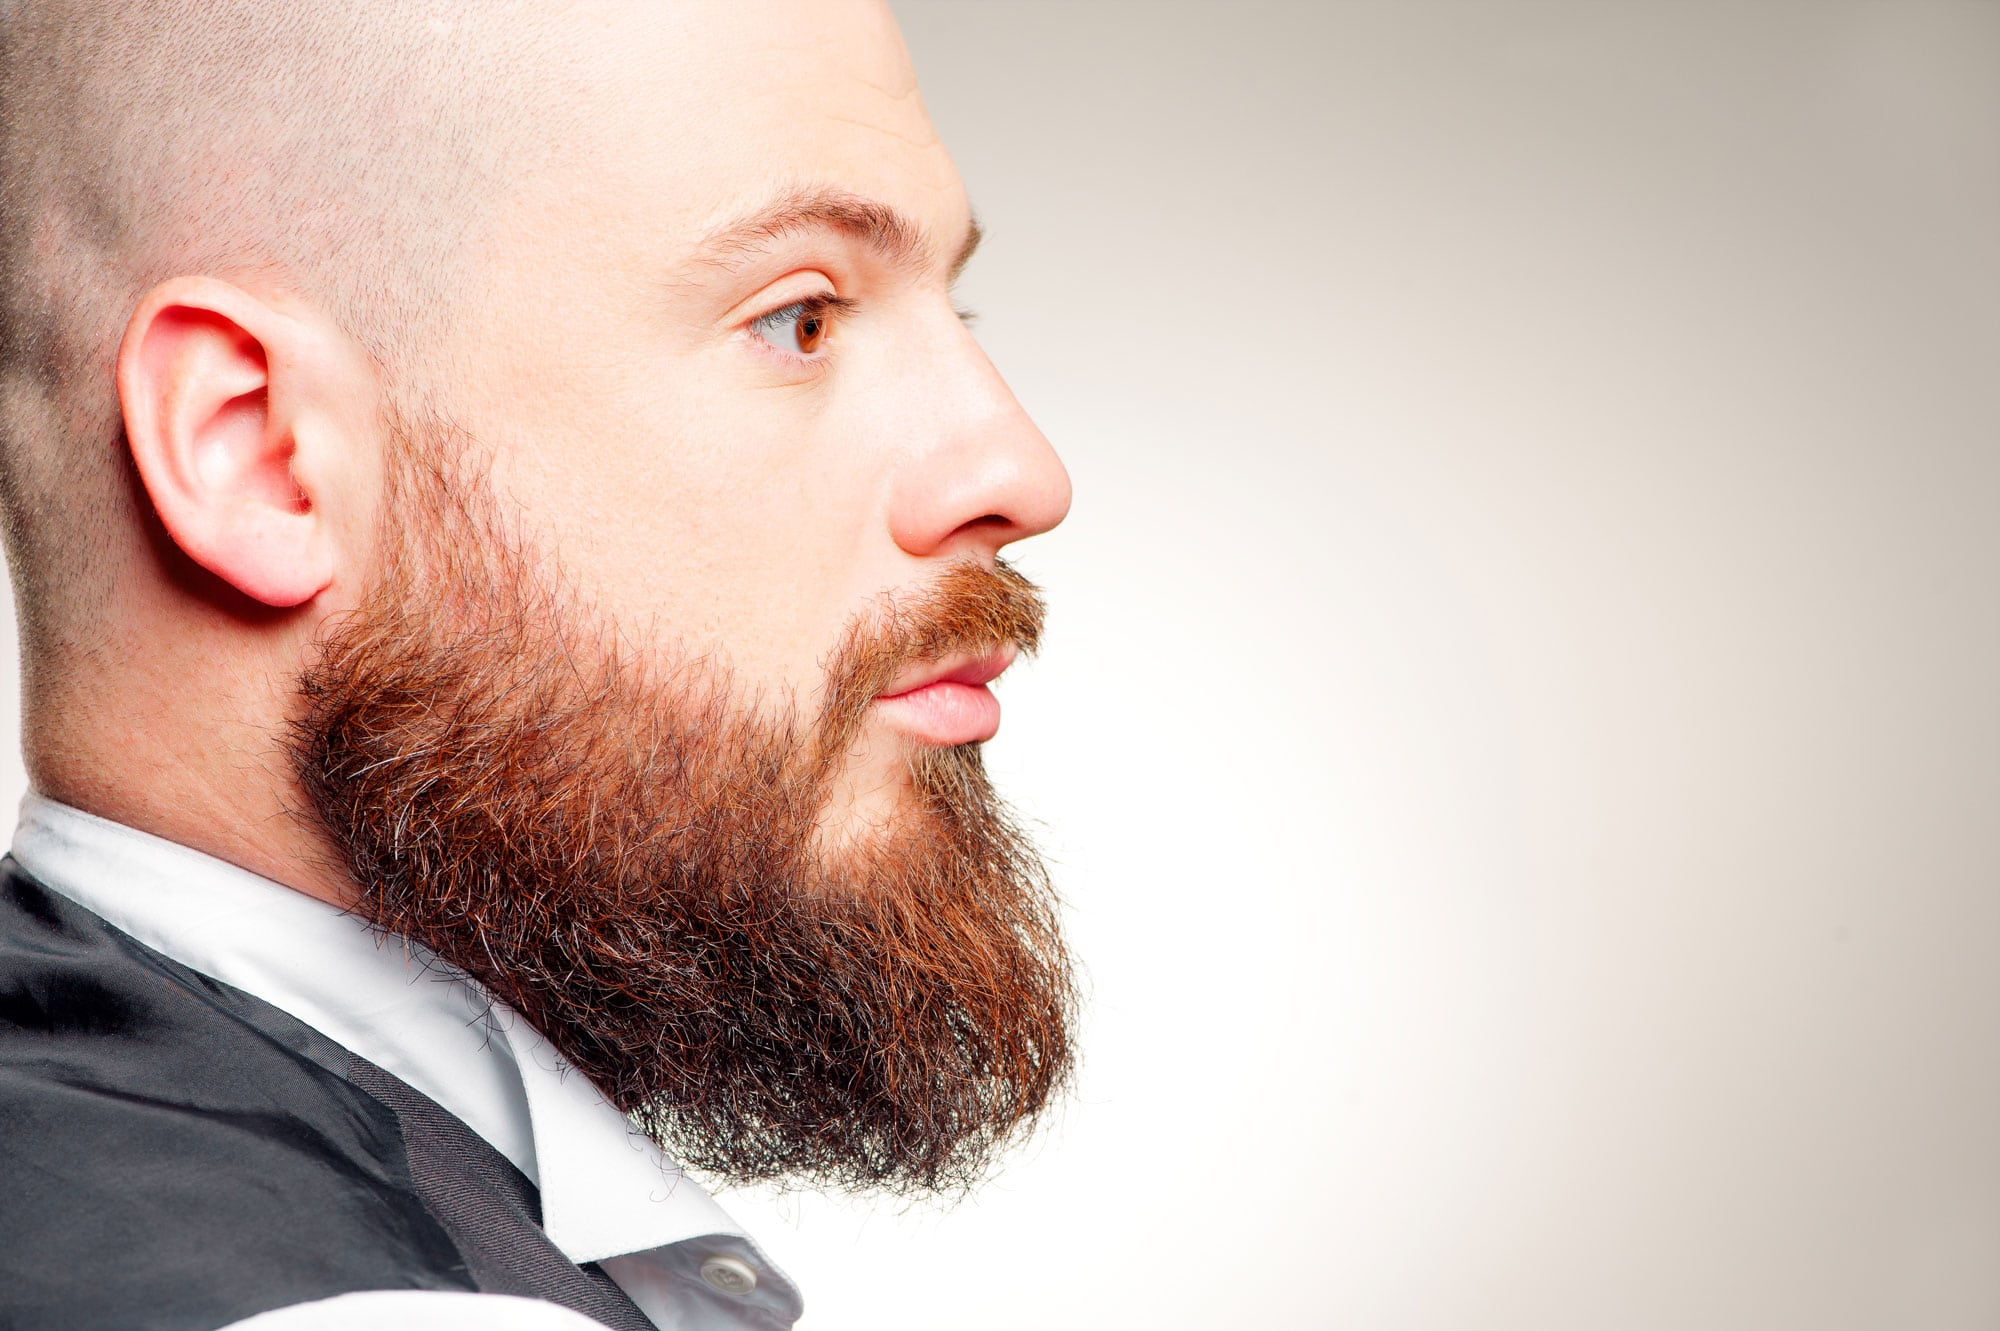 Hair Transplant in Toronto: What You Need To Know About Beard and Moustache Procedures